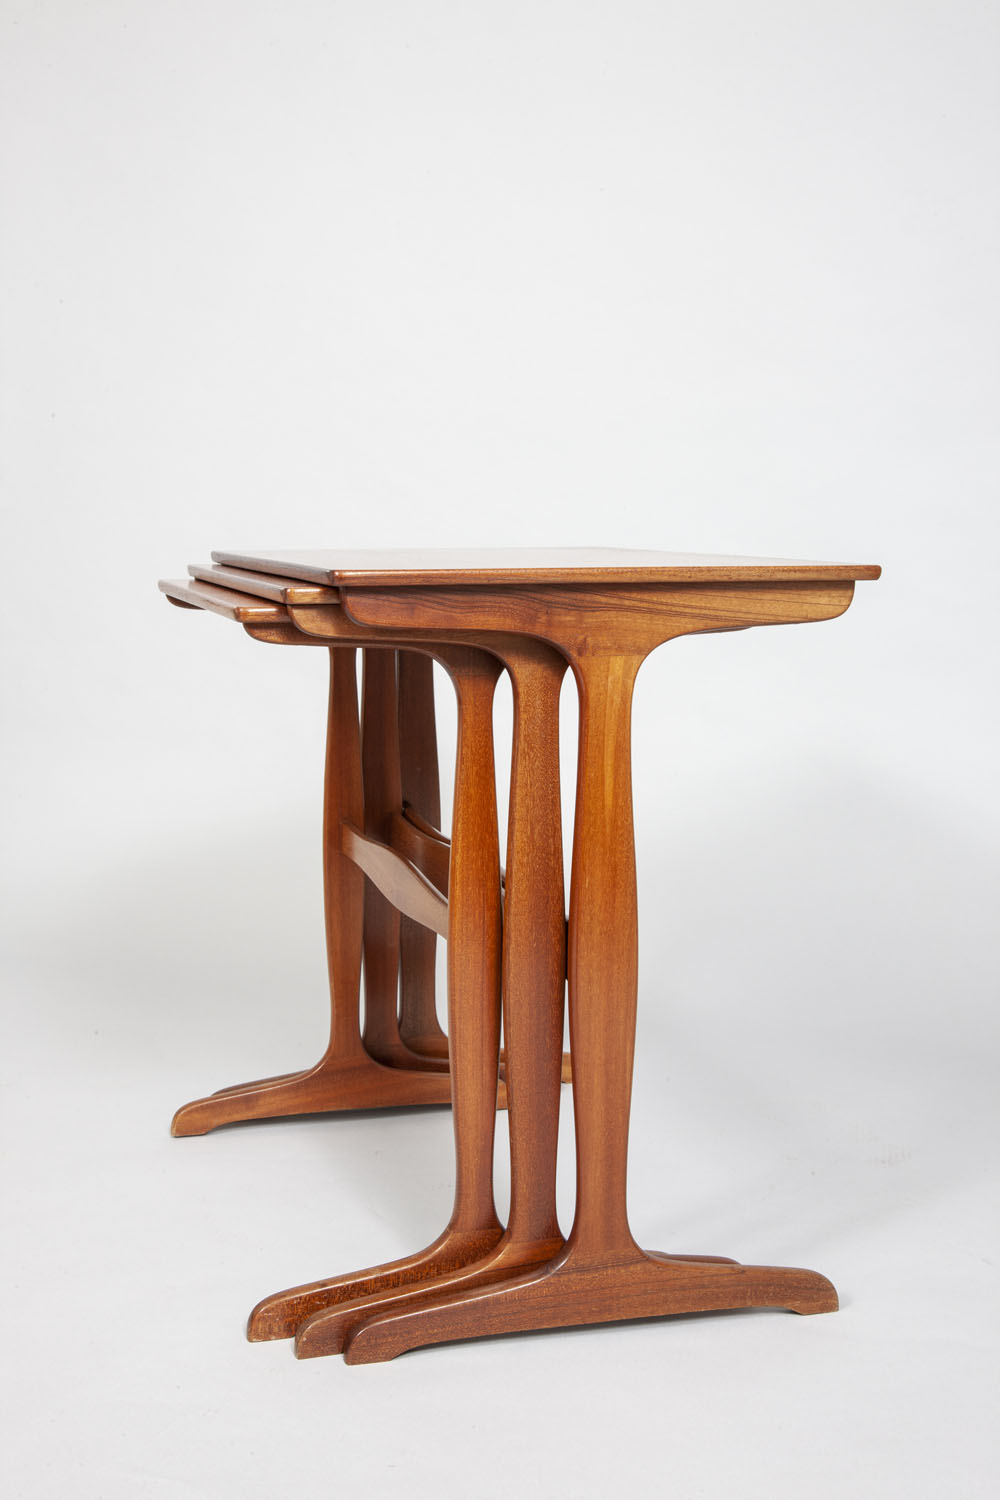 Ole Wanscher trio of little tables